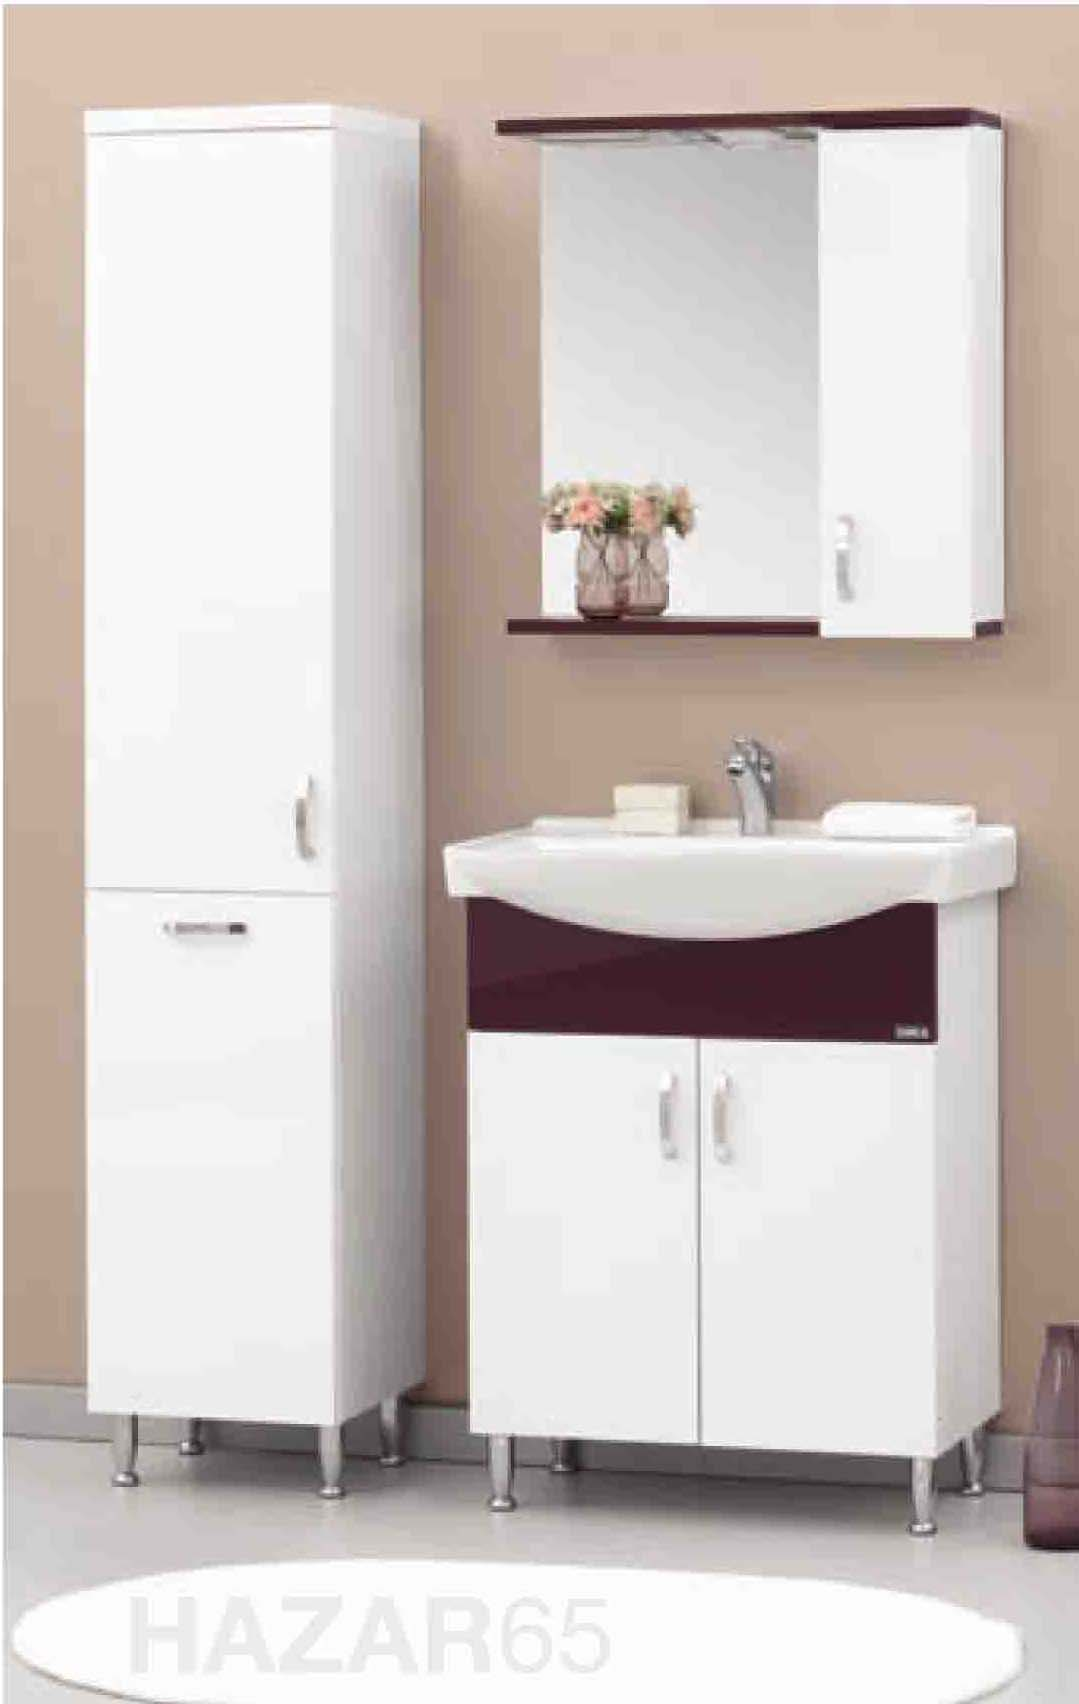 Orka Is Turkish Product Of Bathroom Furniture Al Saif Al